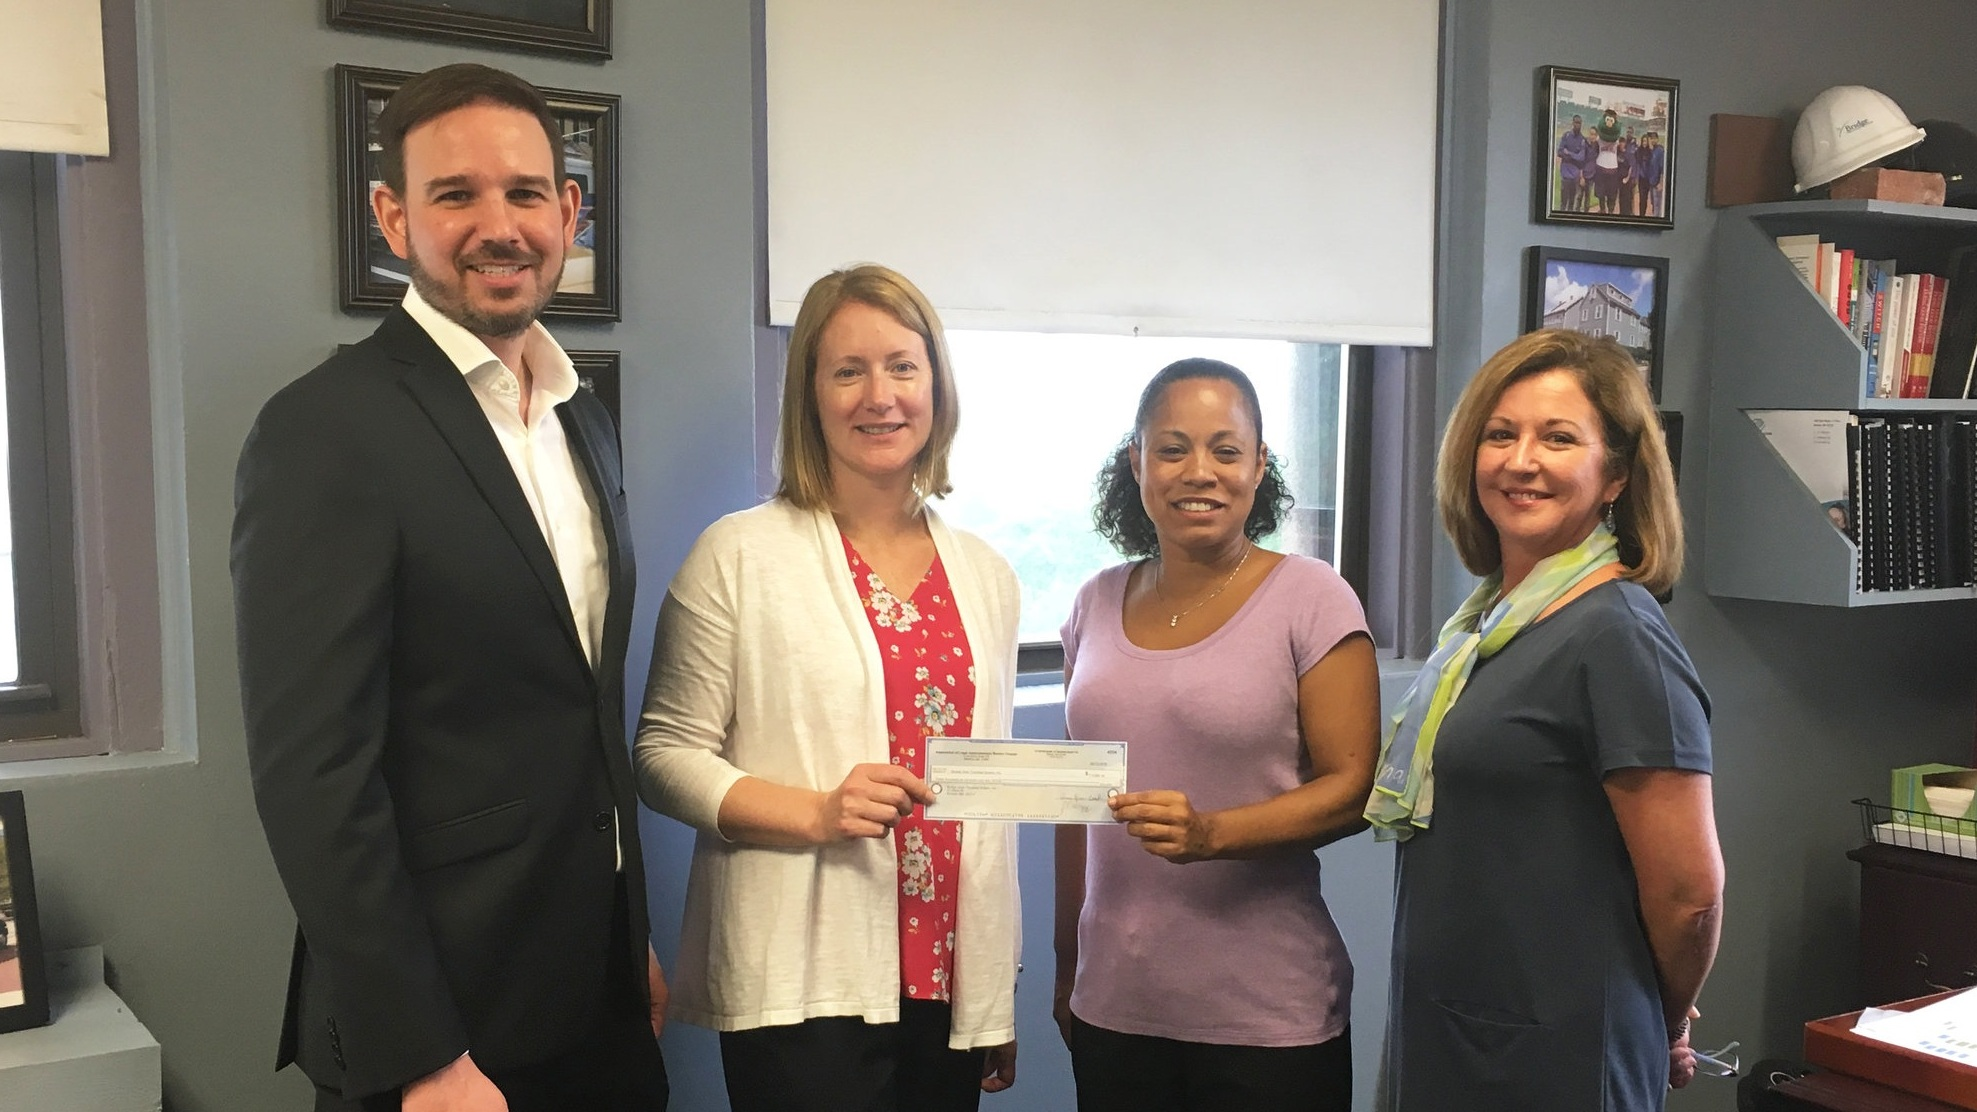 Tim Hardin (Cesari and McKenna, LLP), Amy McDuff (Murtha Cullina, LLP), and Ginni Klier (Kotin, Crabtree & Strong, LLP) presented a check to Elisabeth Jackson (second from right), Executive Director of Bridge Over Troubled Waters.